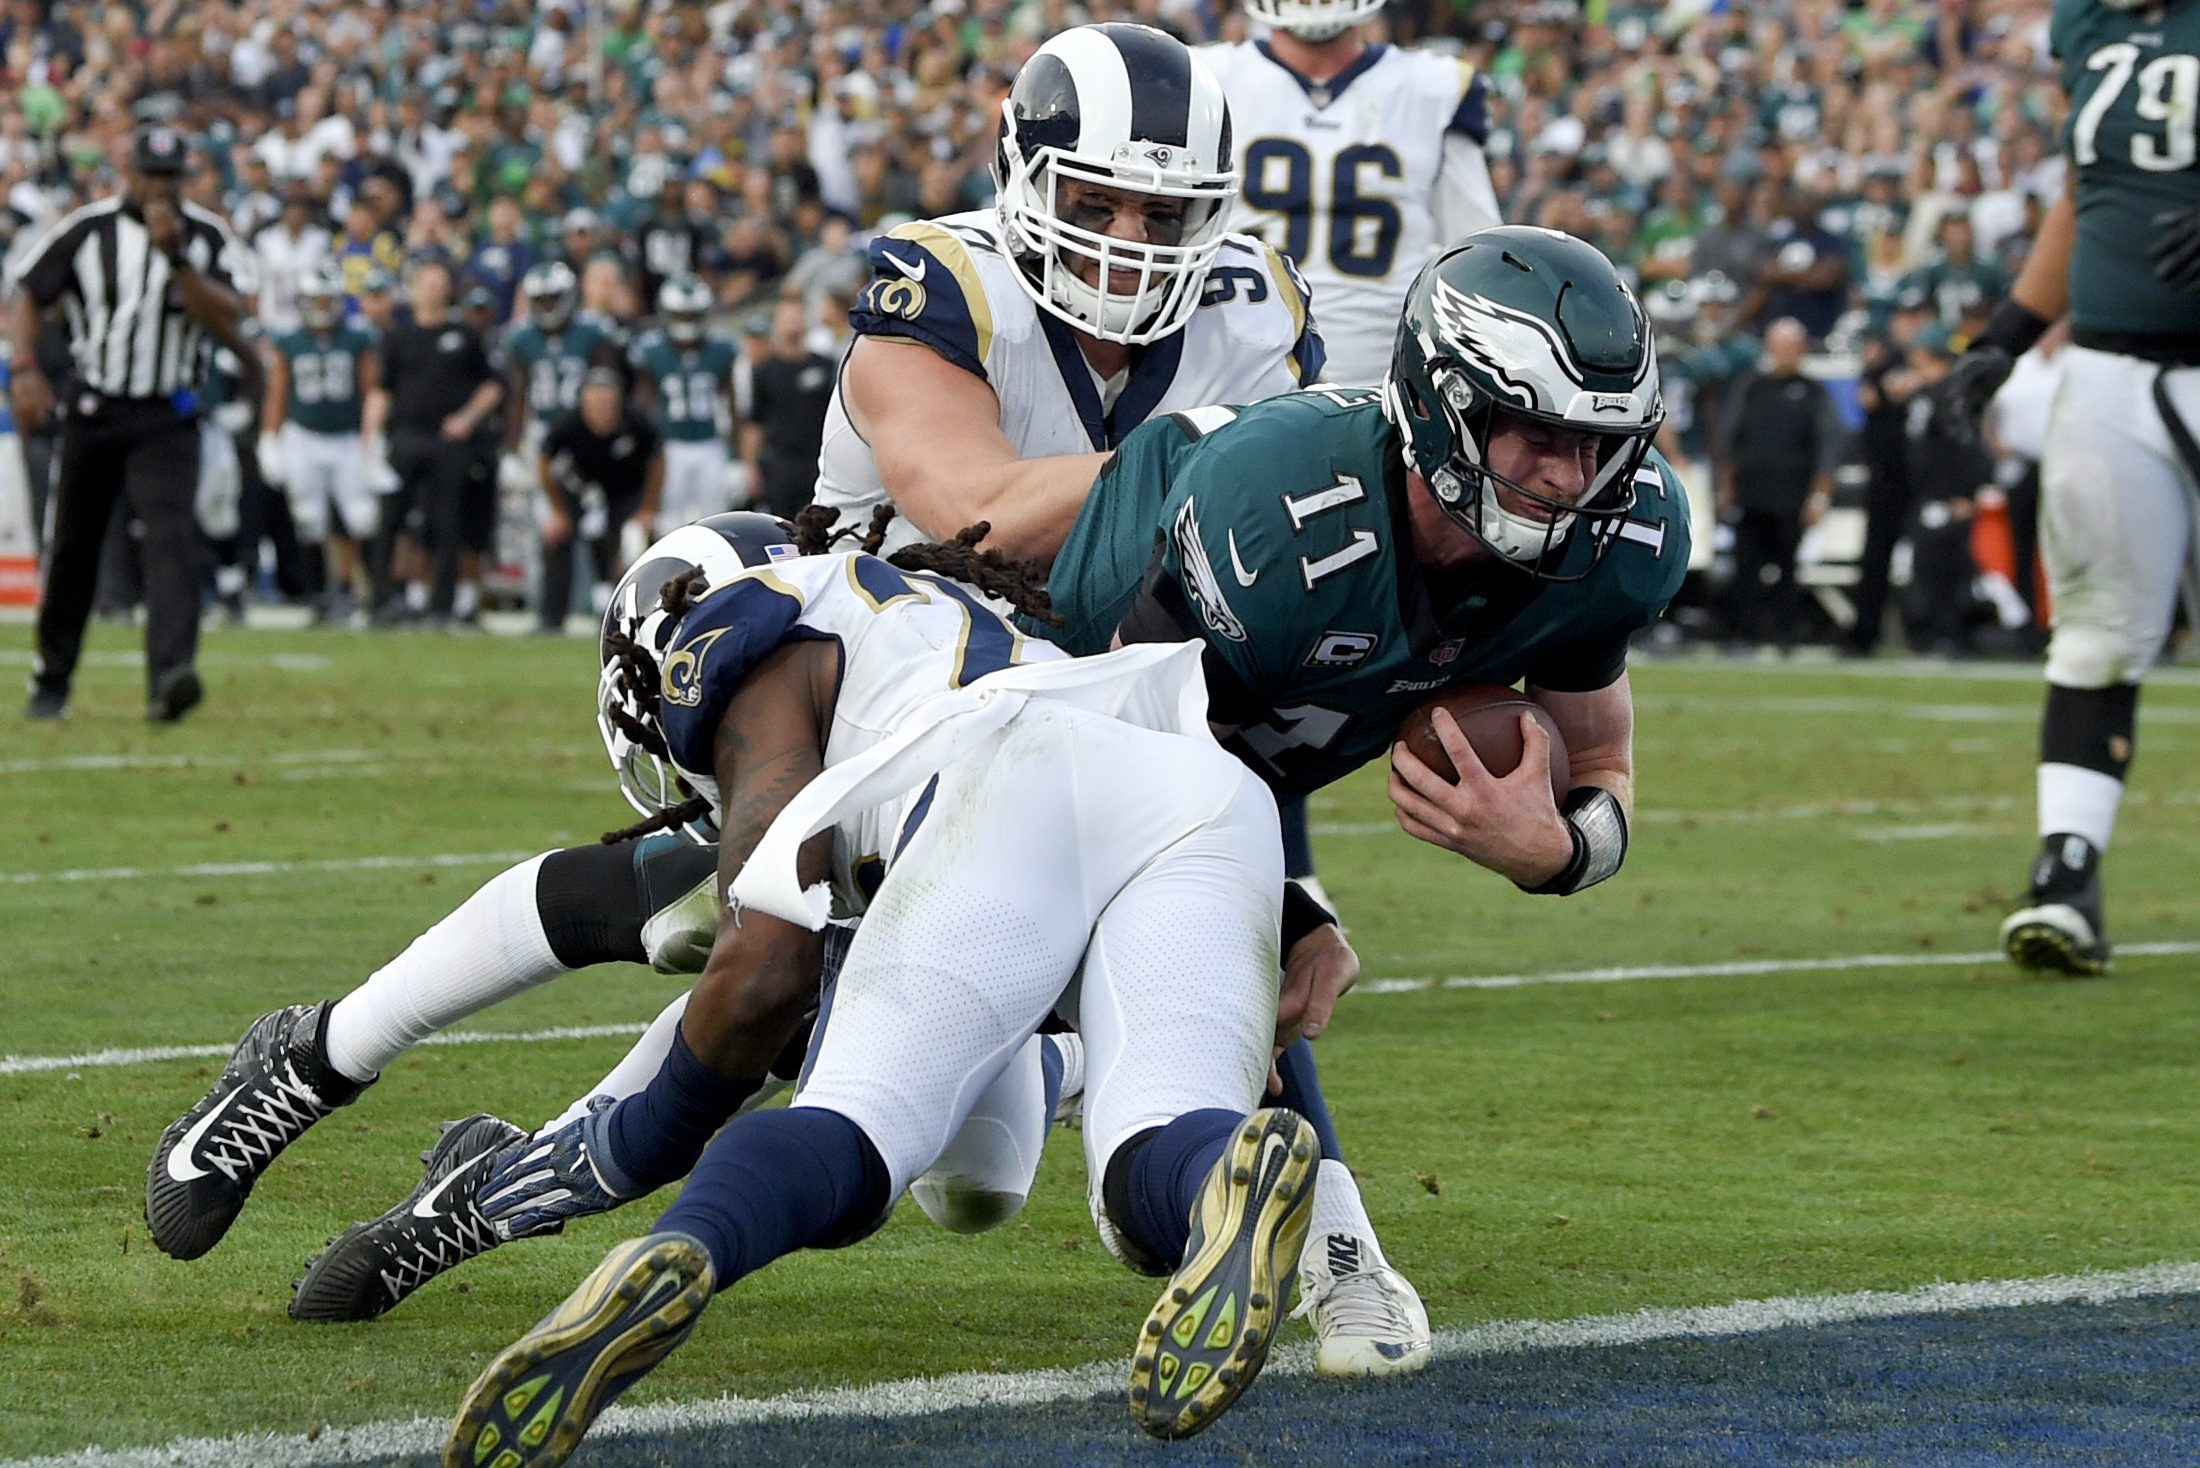 Carson Wentz gets tackled during the third quarter. He left the game shortly after the play and did not return.